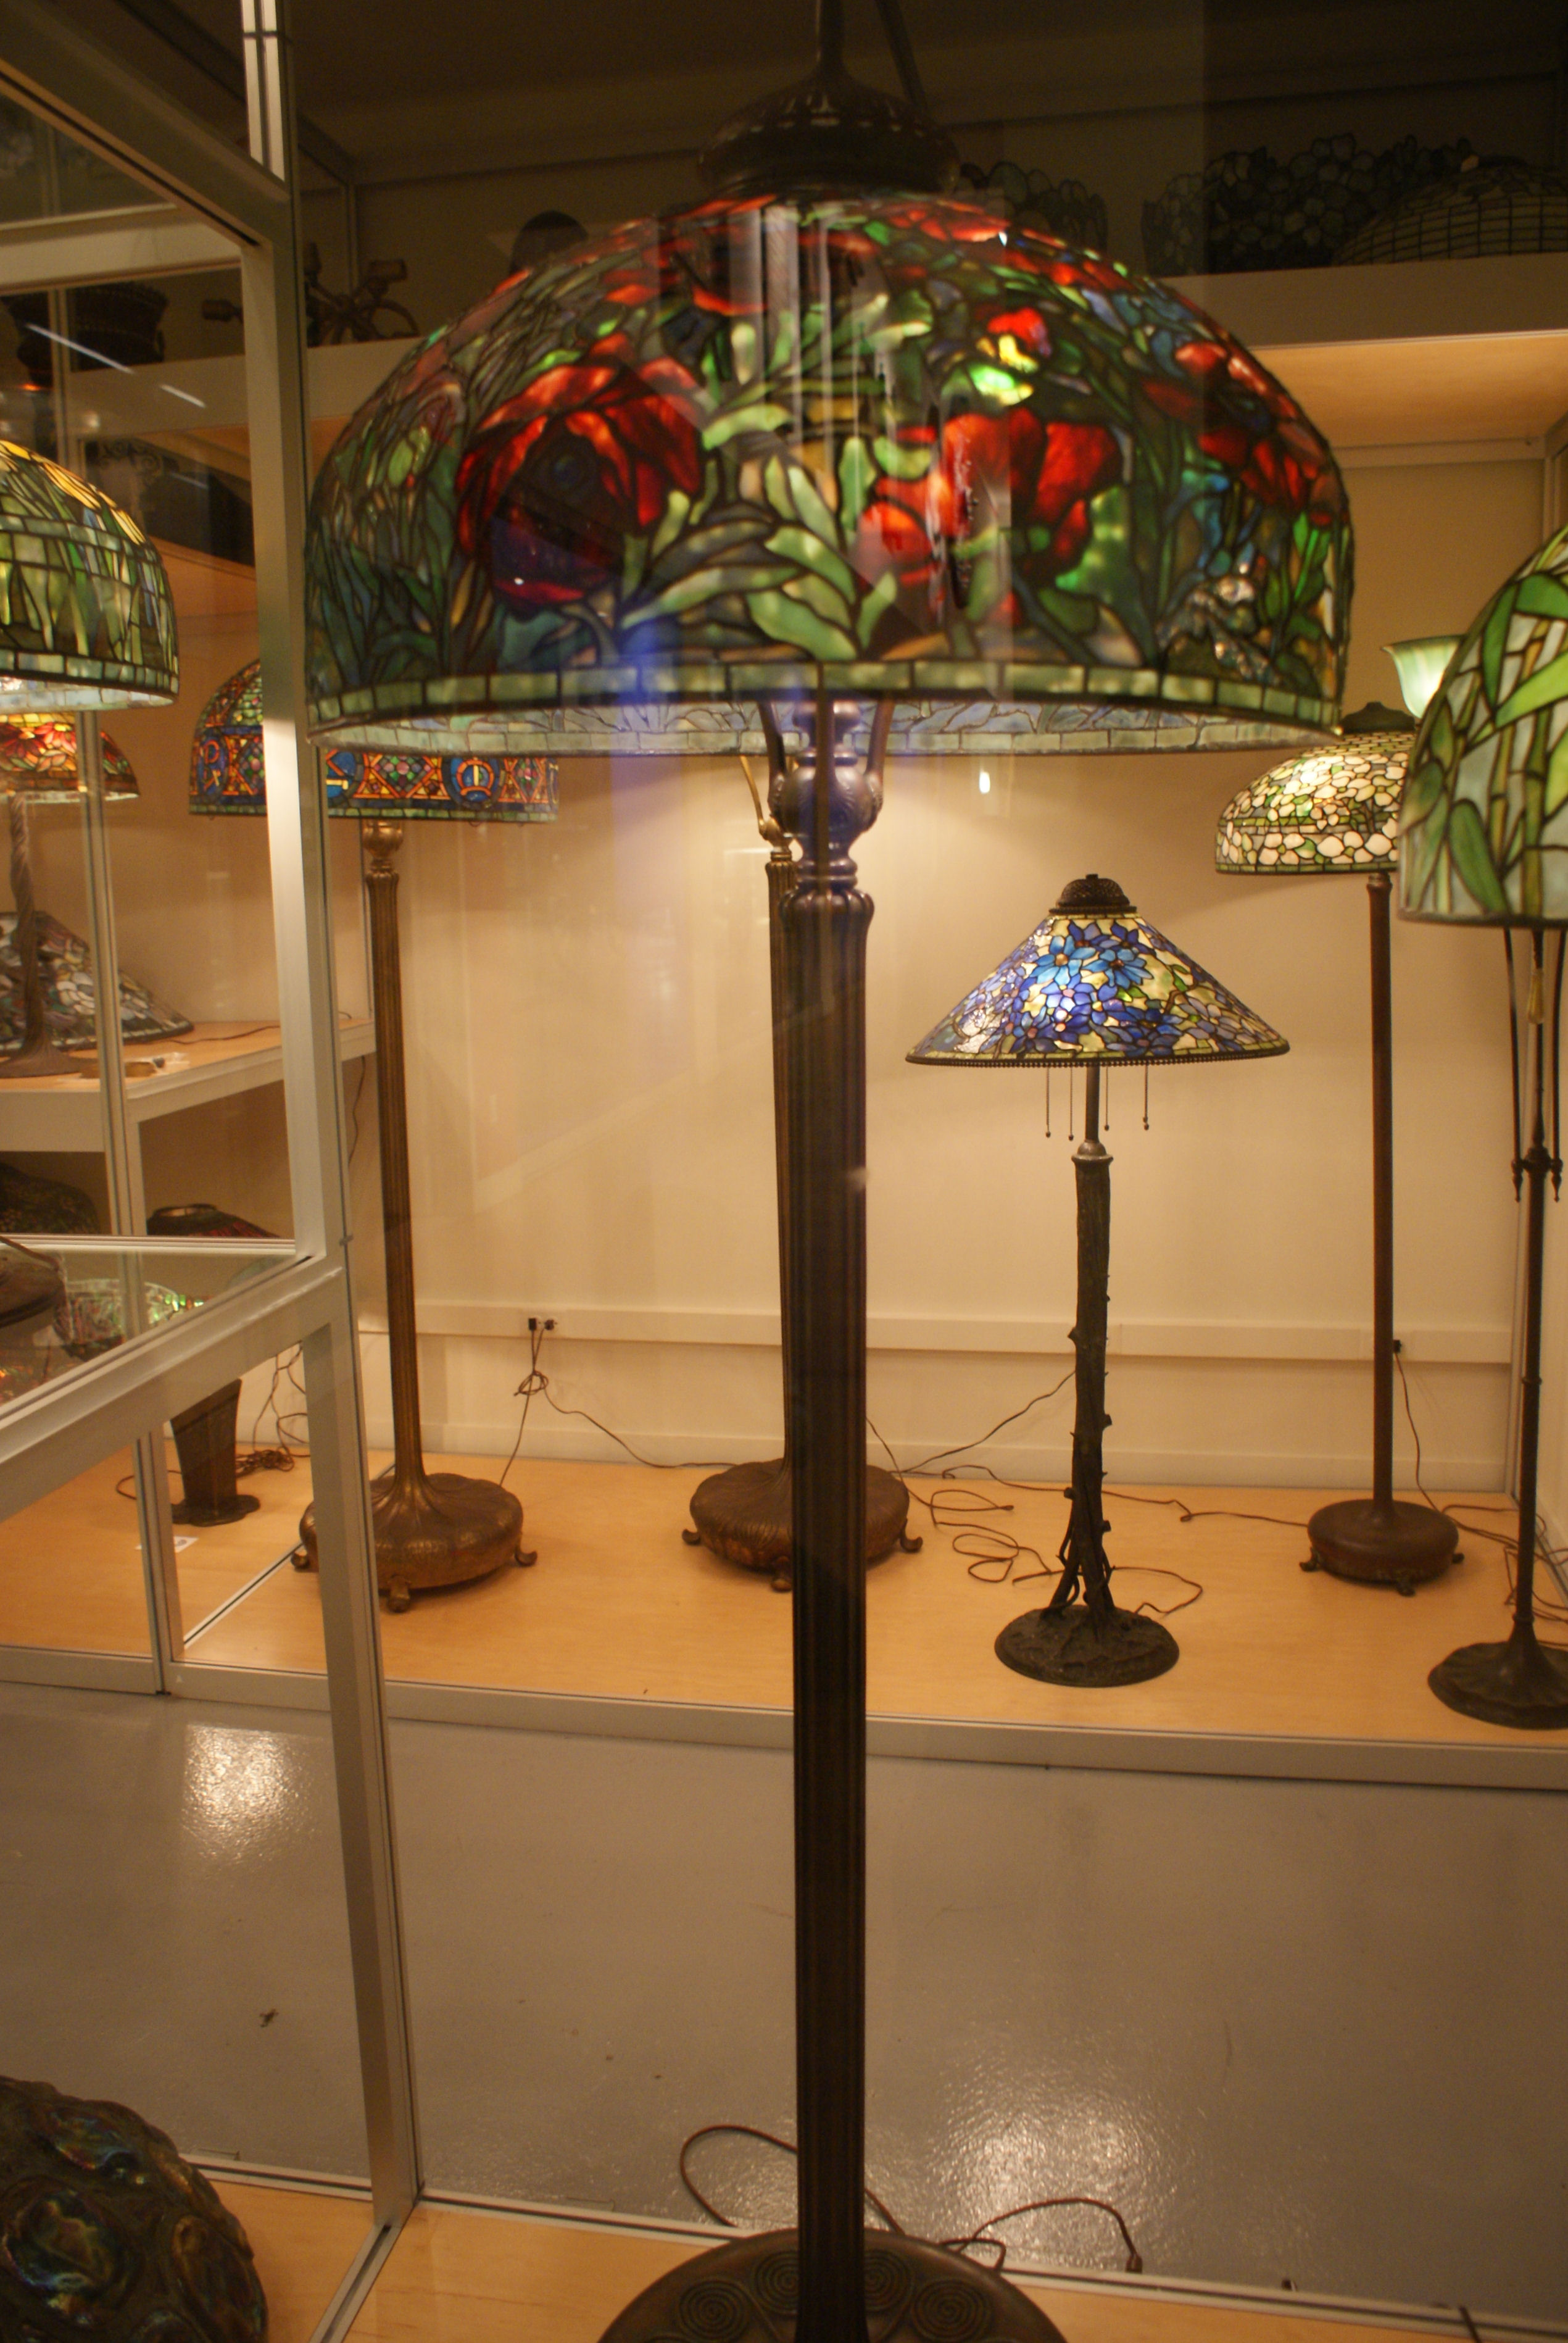 Filewla nyhistorical tiffany studios red oriental poppy floor lamp filewla nyhistorical tiffany studios red oriental poppy floor lampg aloadofball Gallery